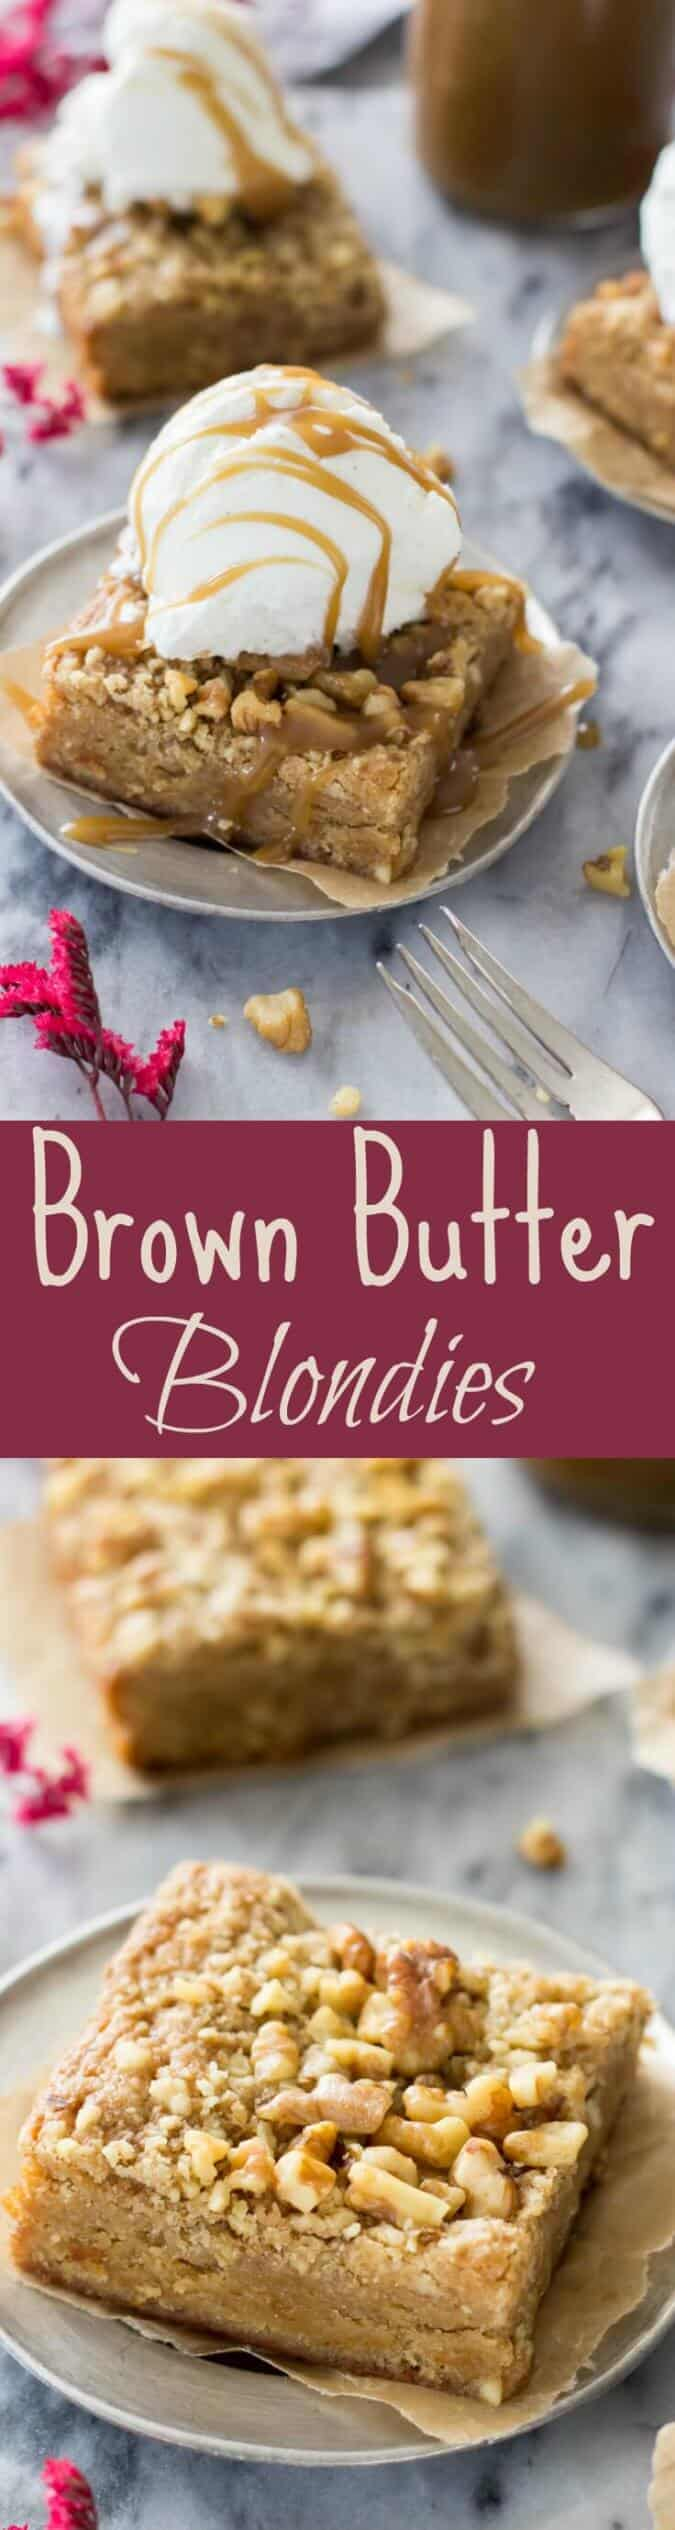 brown-butter-blondies-with-walnut-crumble-sugarspunrun